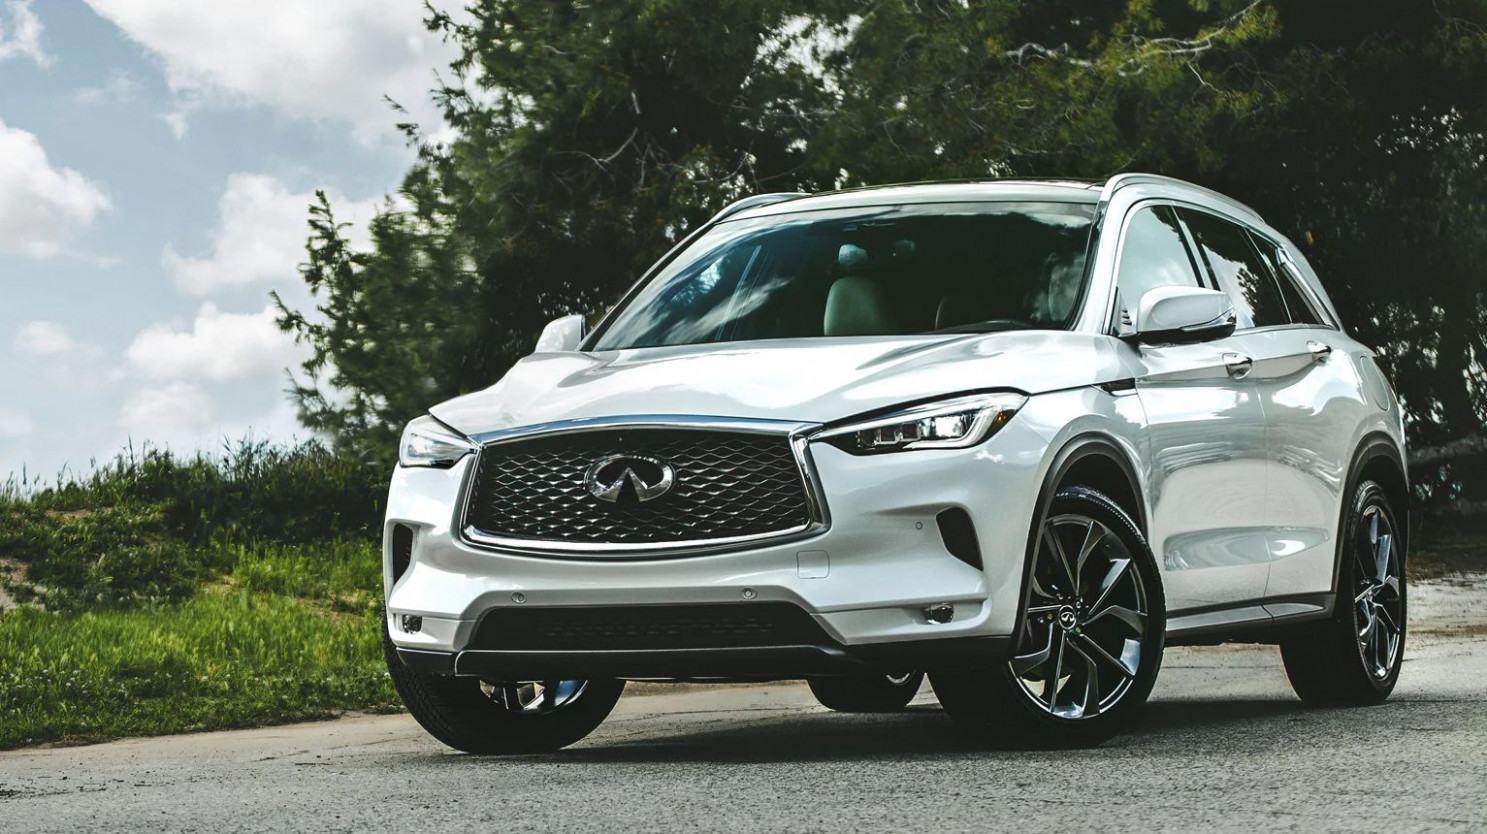 8 Infiniti QX8 Review, Pricing, and Specs - infiniti qx50 2020